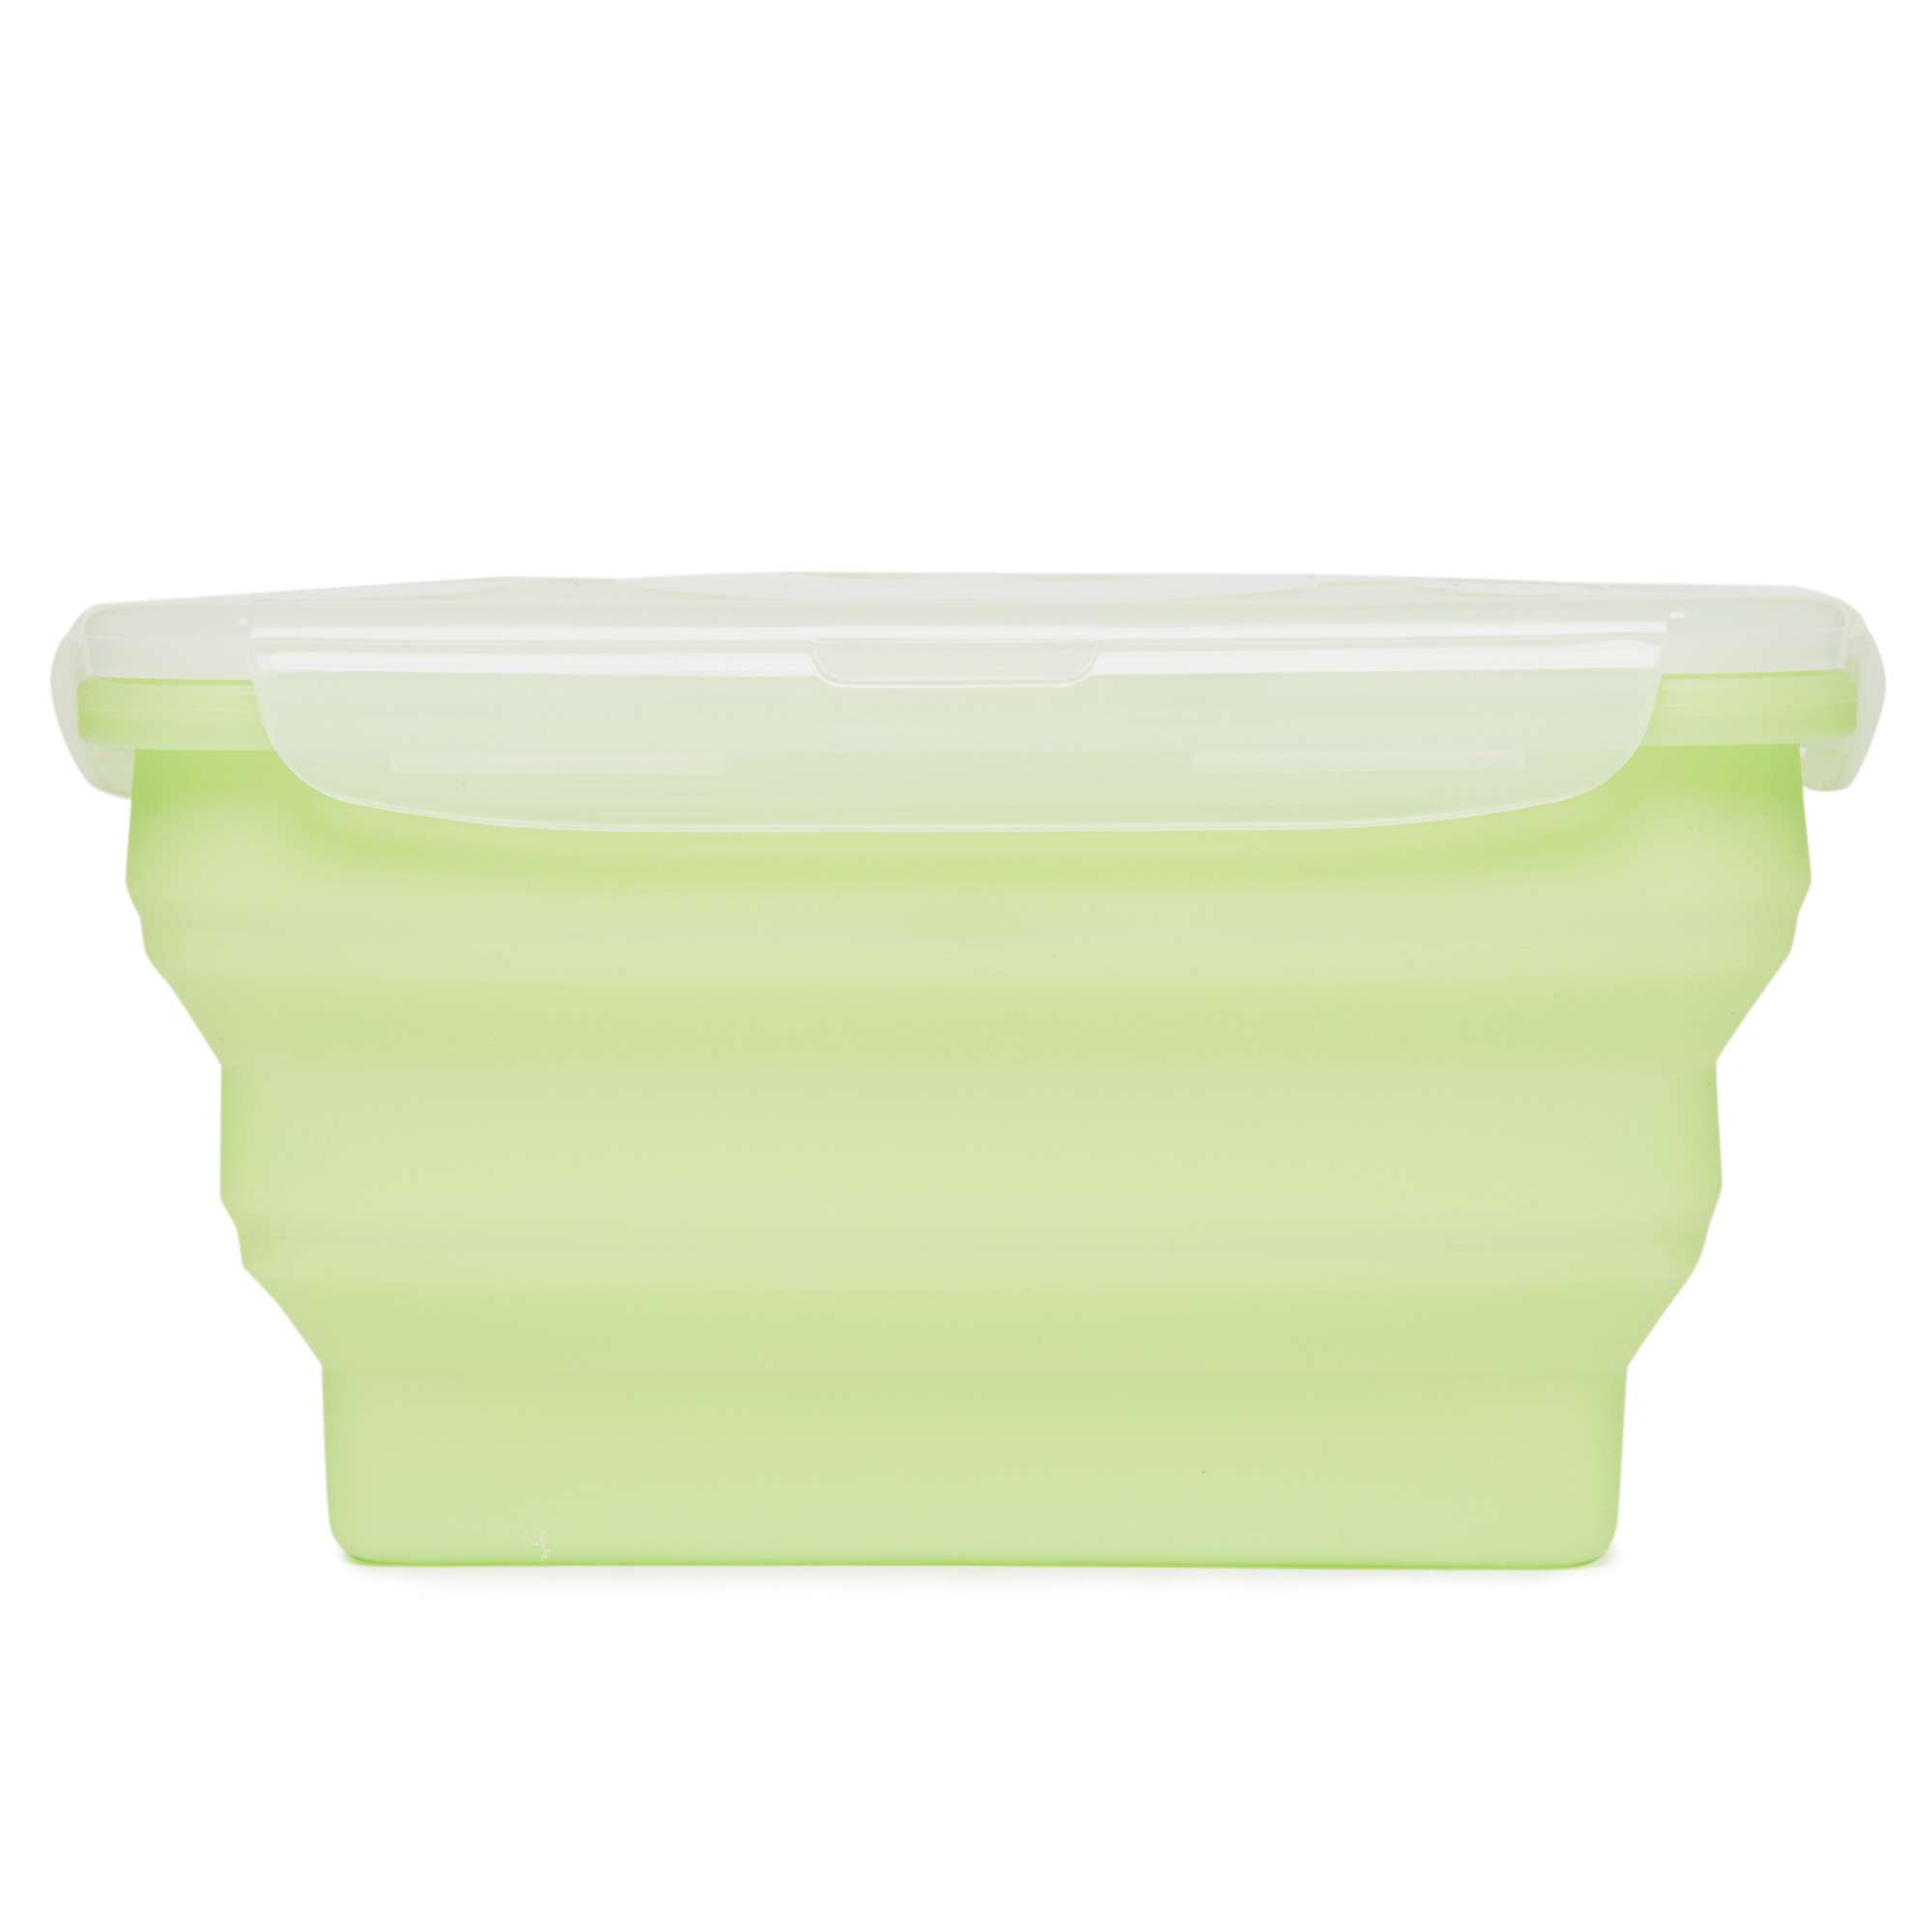 OUTWELL Collaps Food Box Large